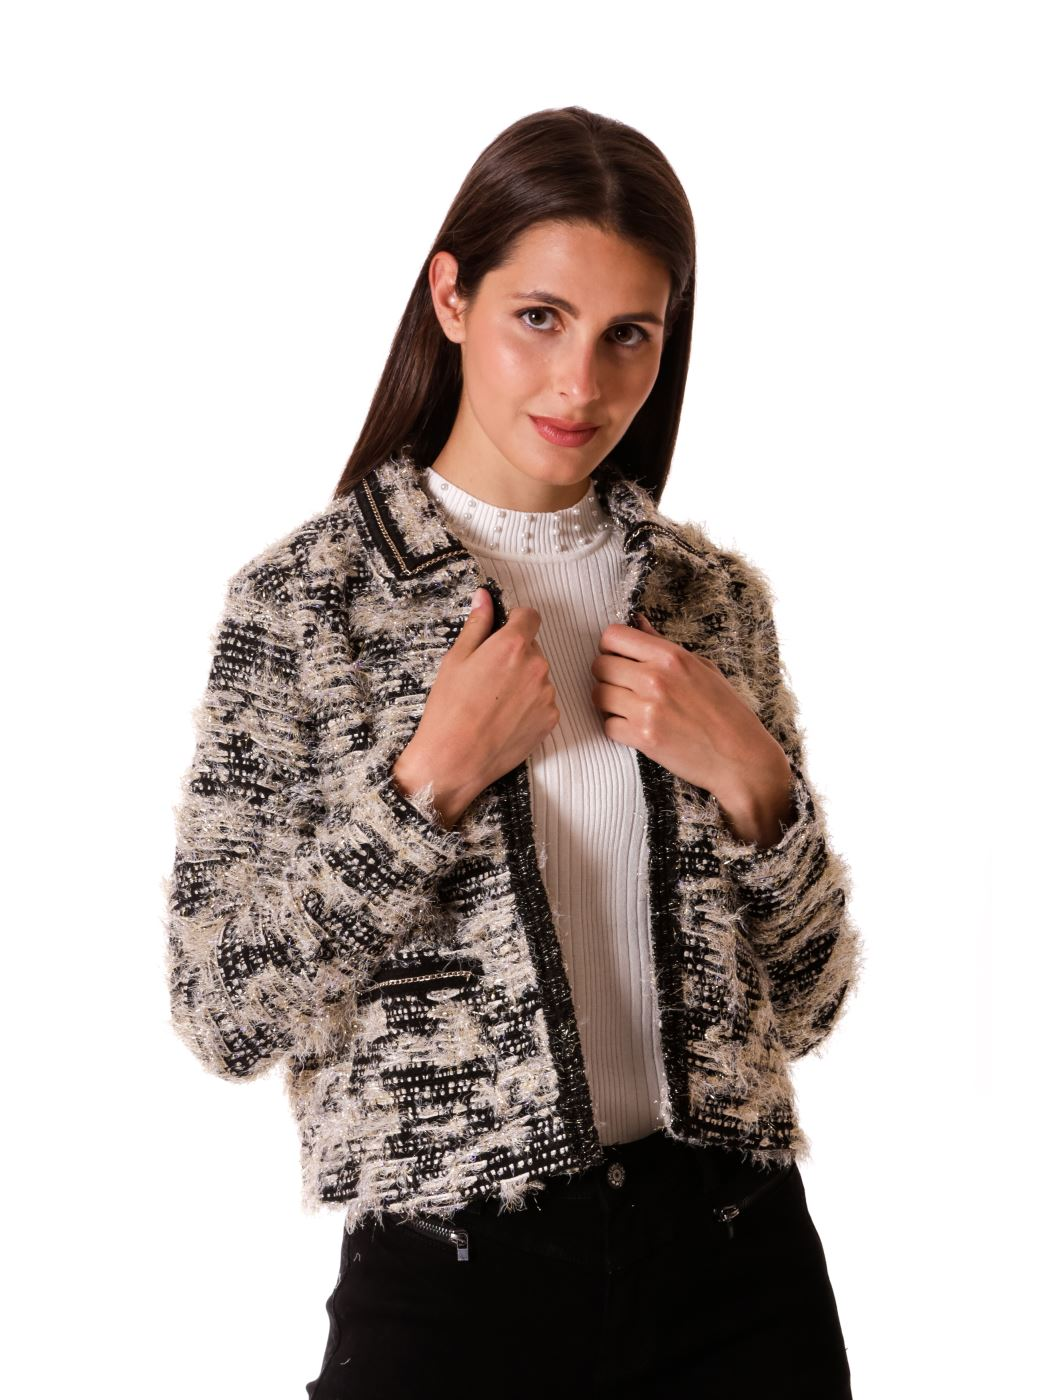 Giacca boucle' stile Chanel